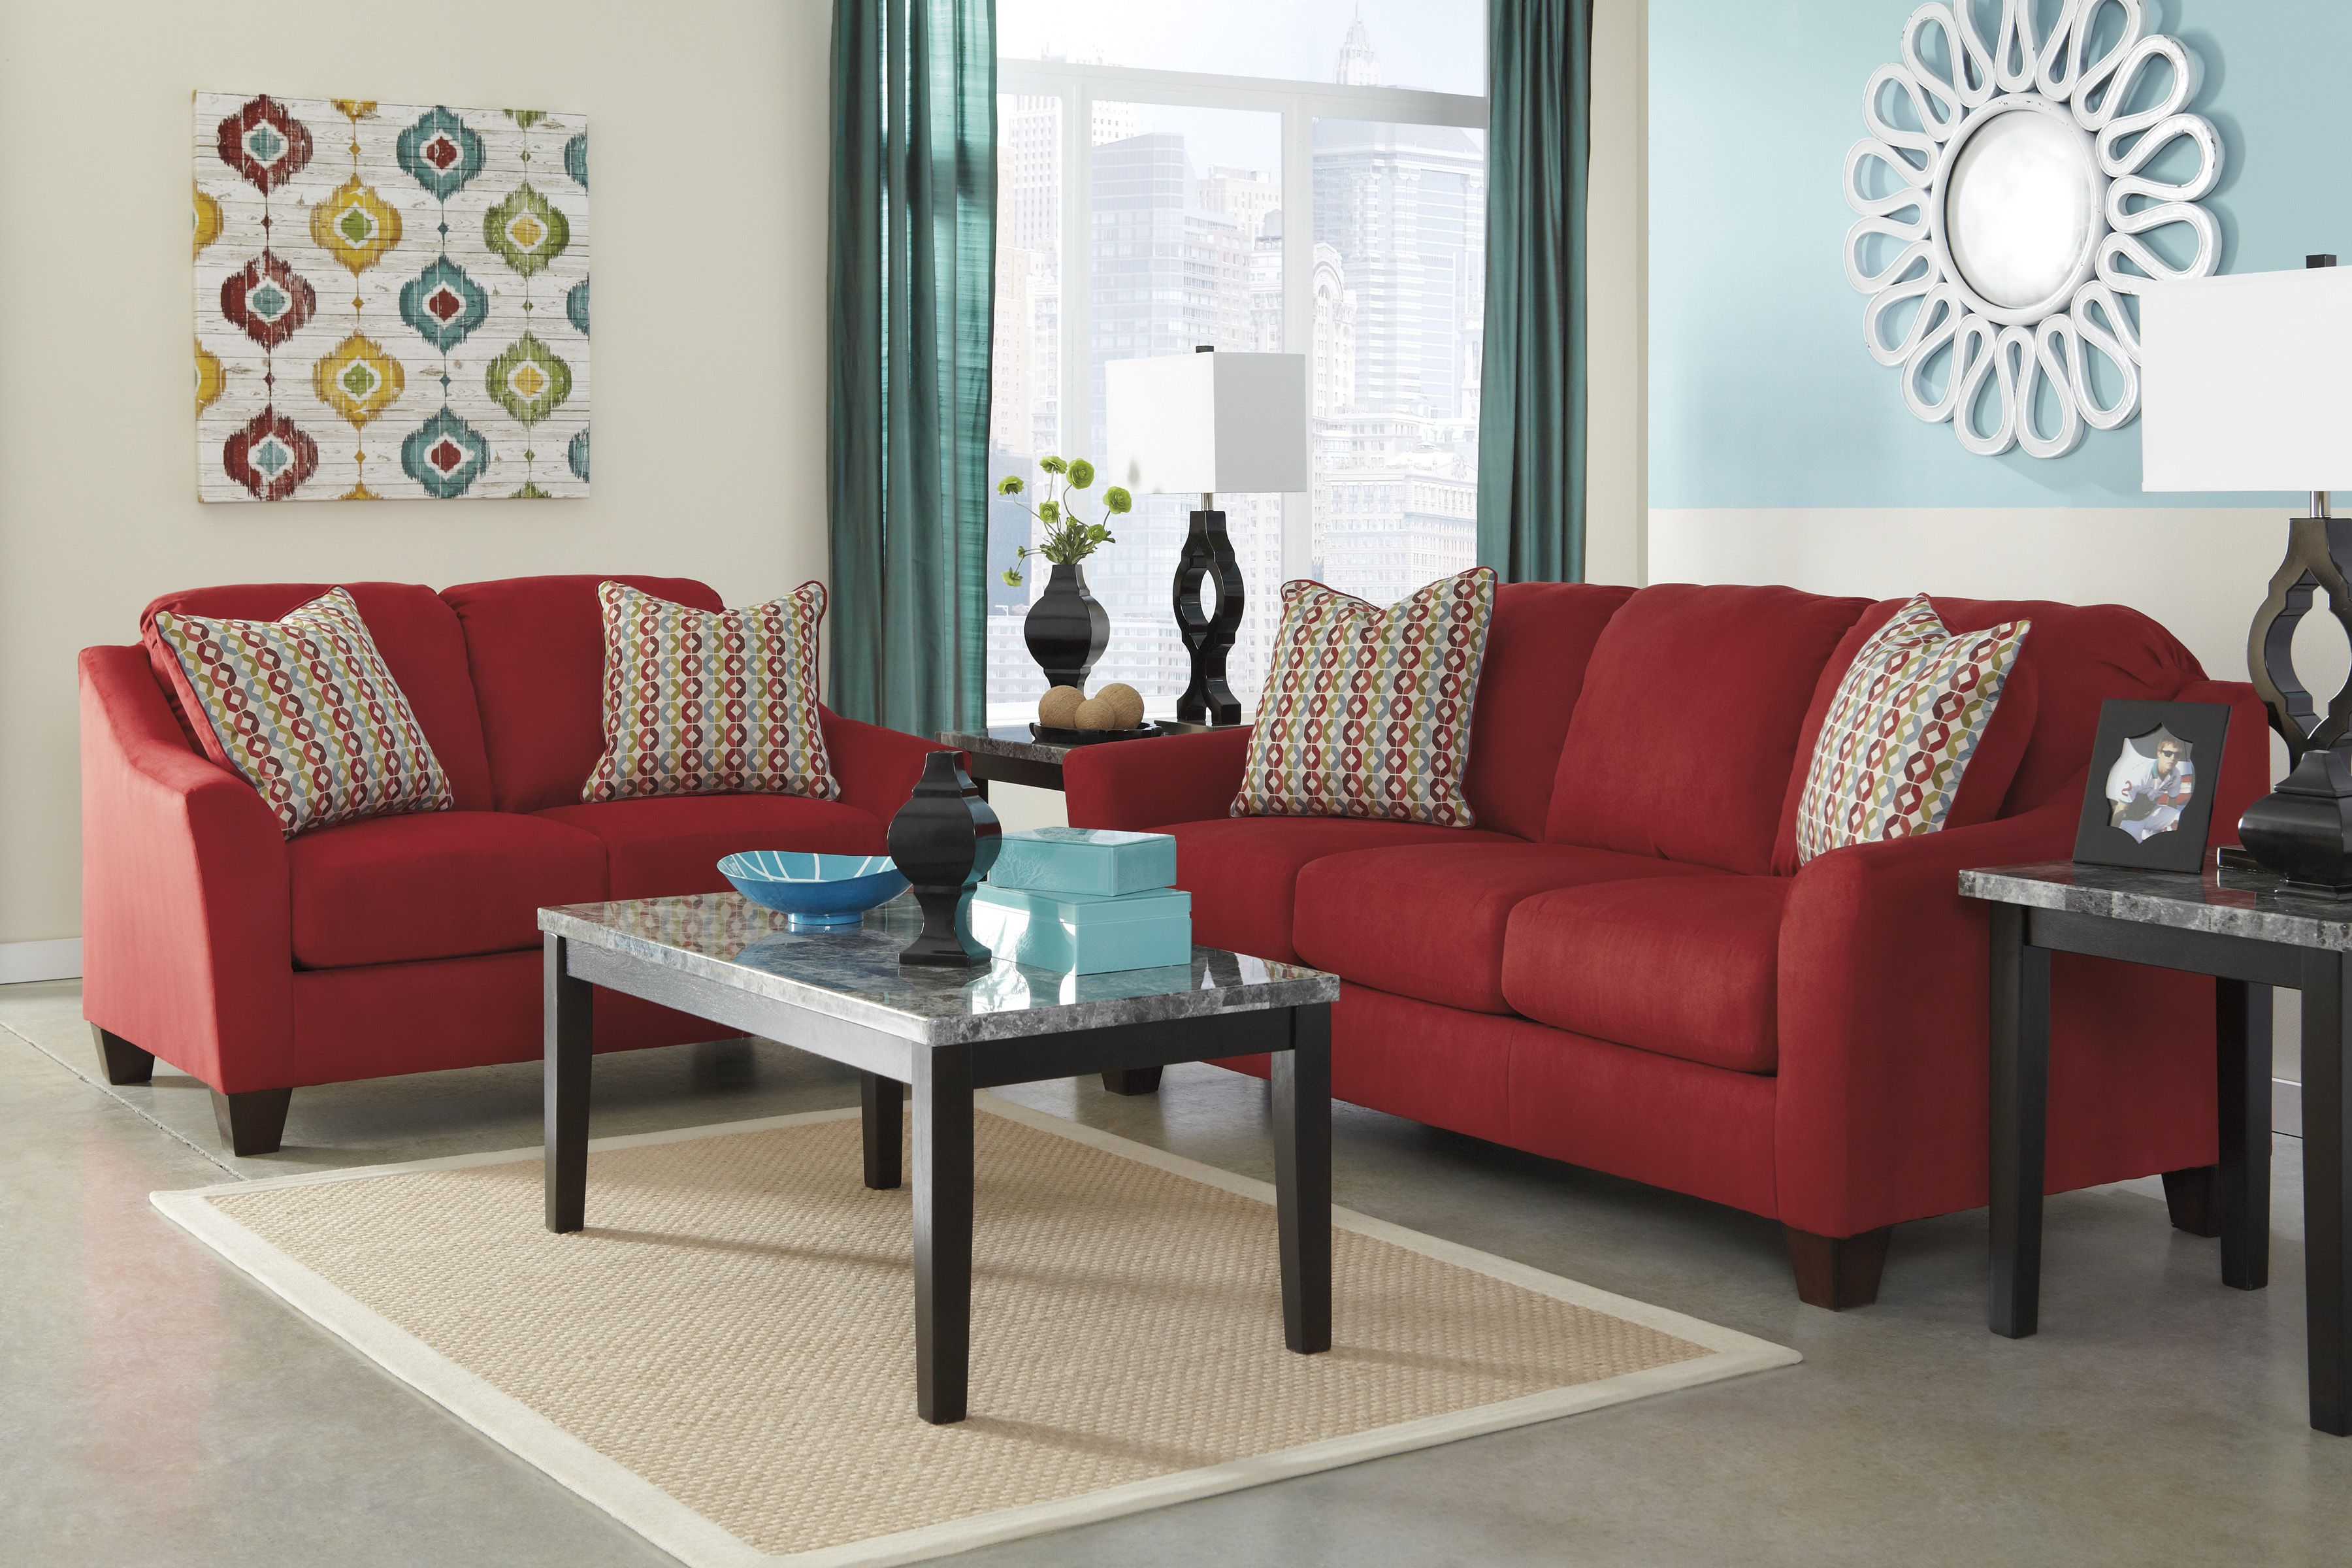 from living coleman sw set ashley room sets furniture red tensas htm livings